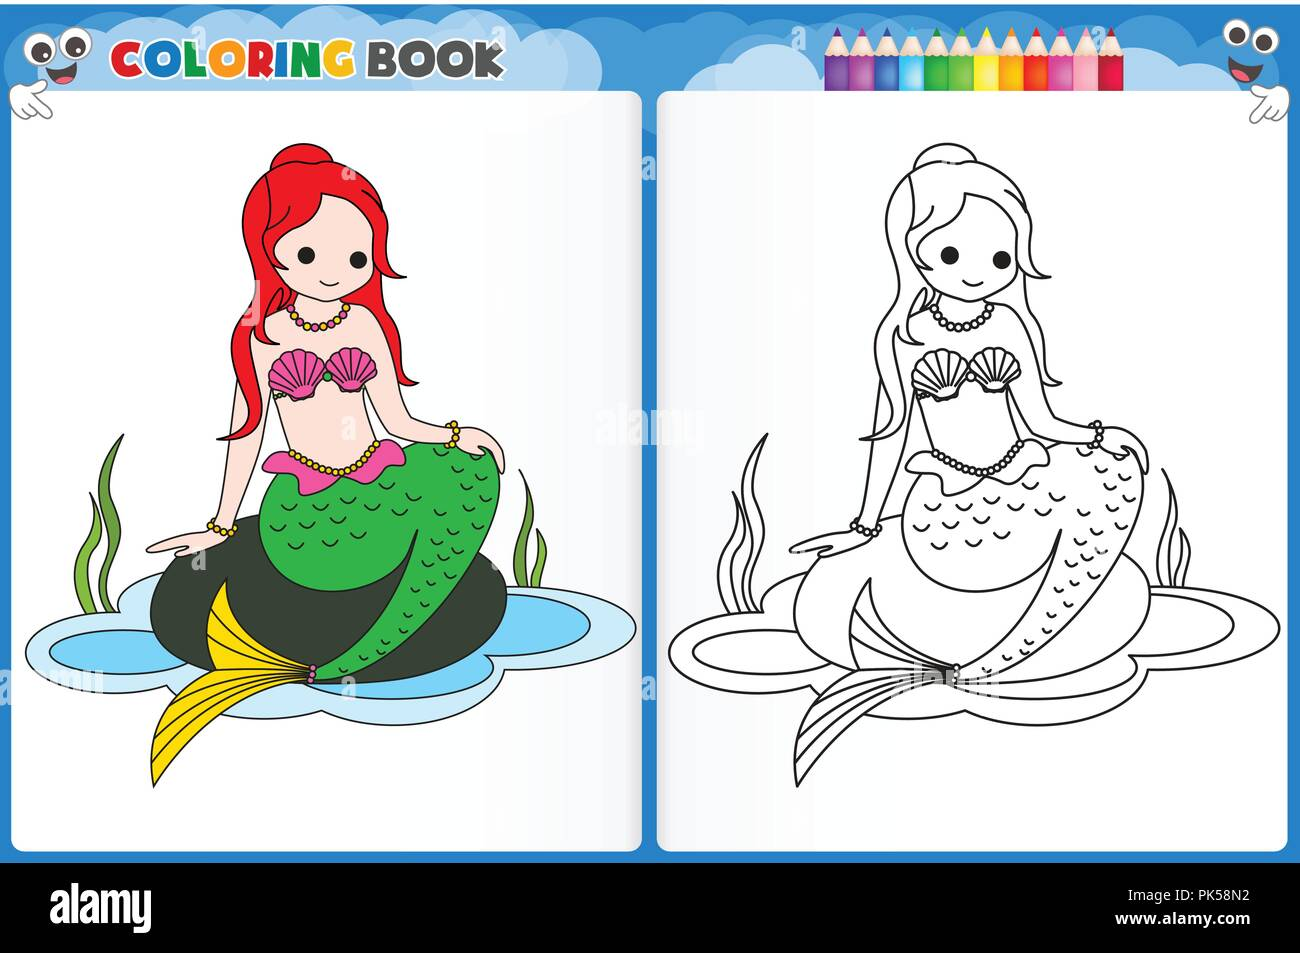 coloring page mermaid with colorful sample printable worksheet for